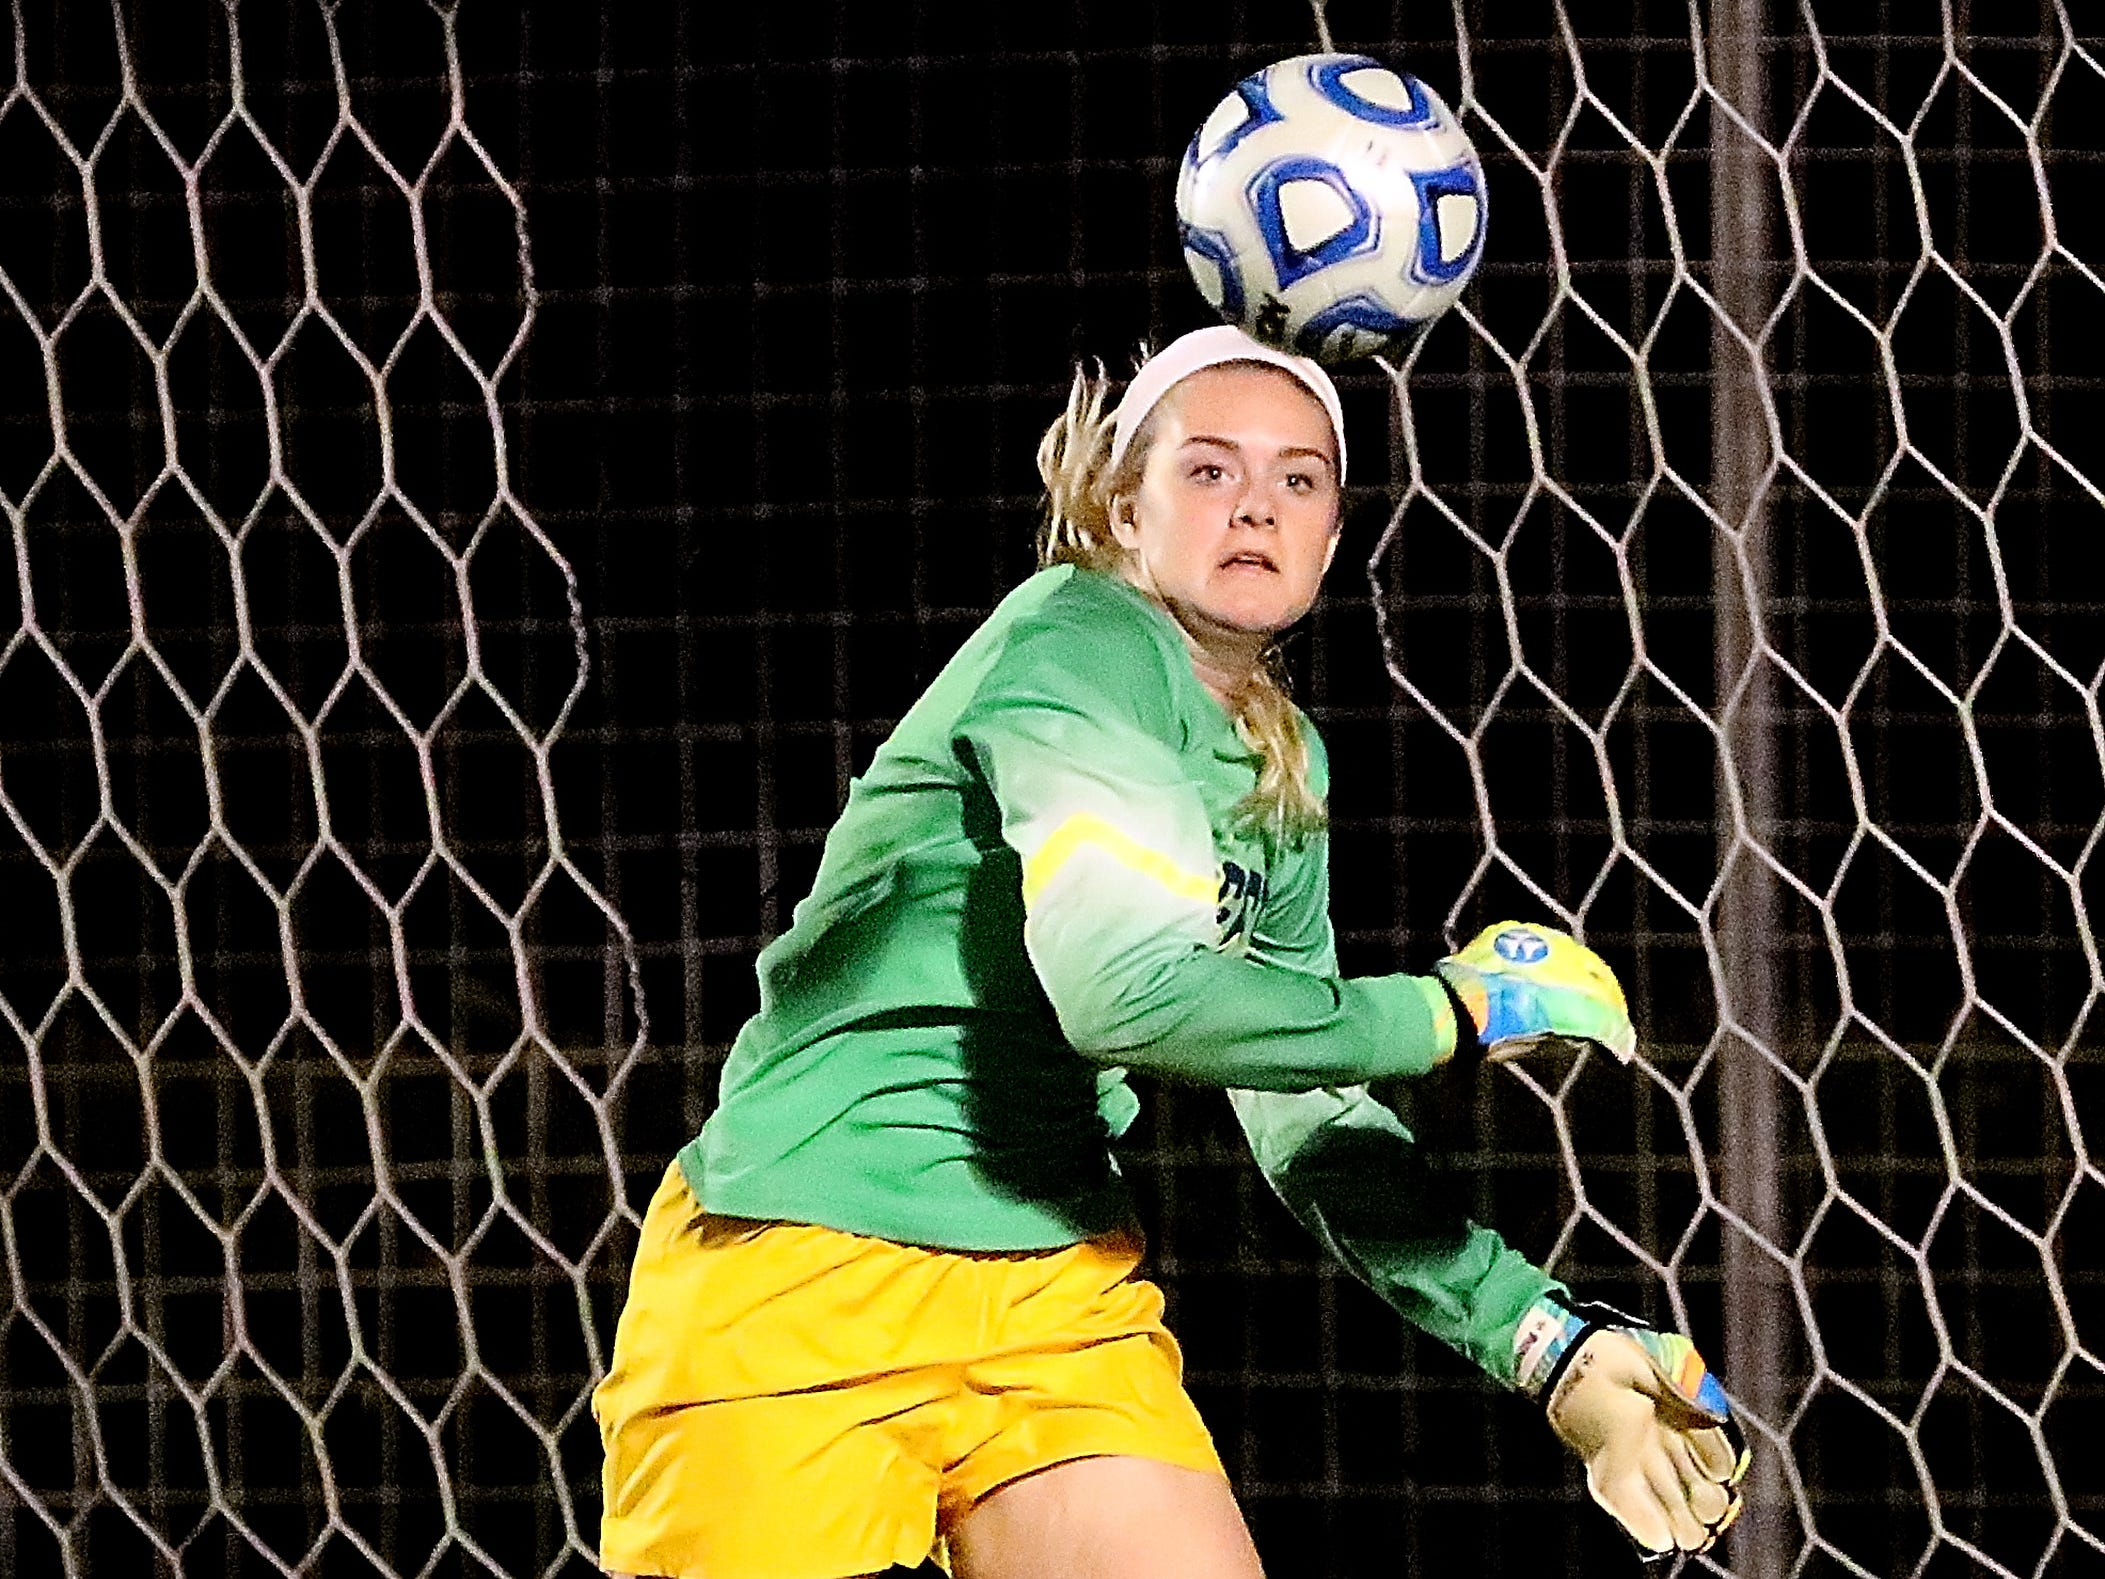 Siegel's keeper Courtney Donnelly (37) goes after a save in the semifinals 7-AAA Soccer Tournament against Oakland, on Tuesday,  Oct. 09, 2018 at the Siegel Soccer Complex.